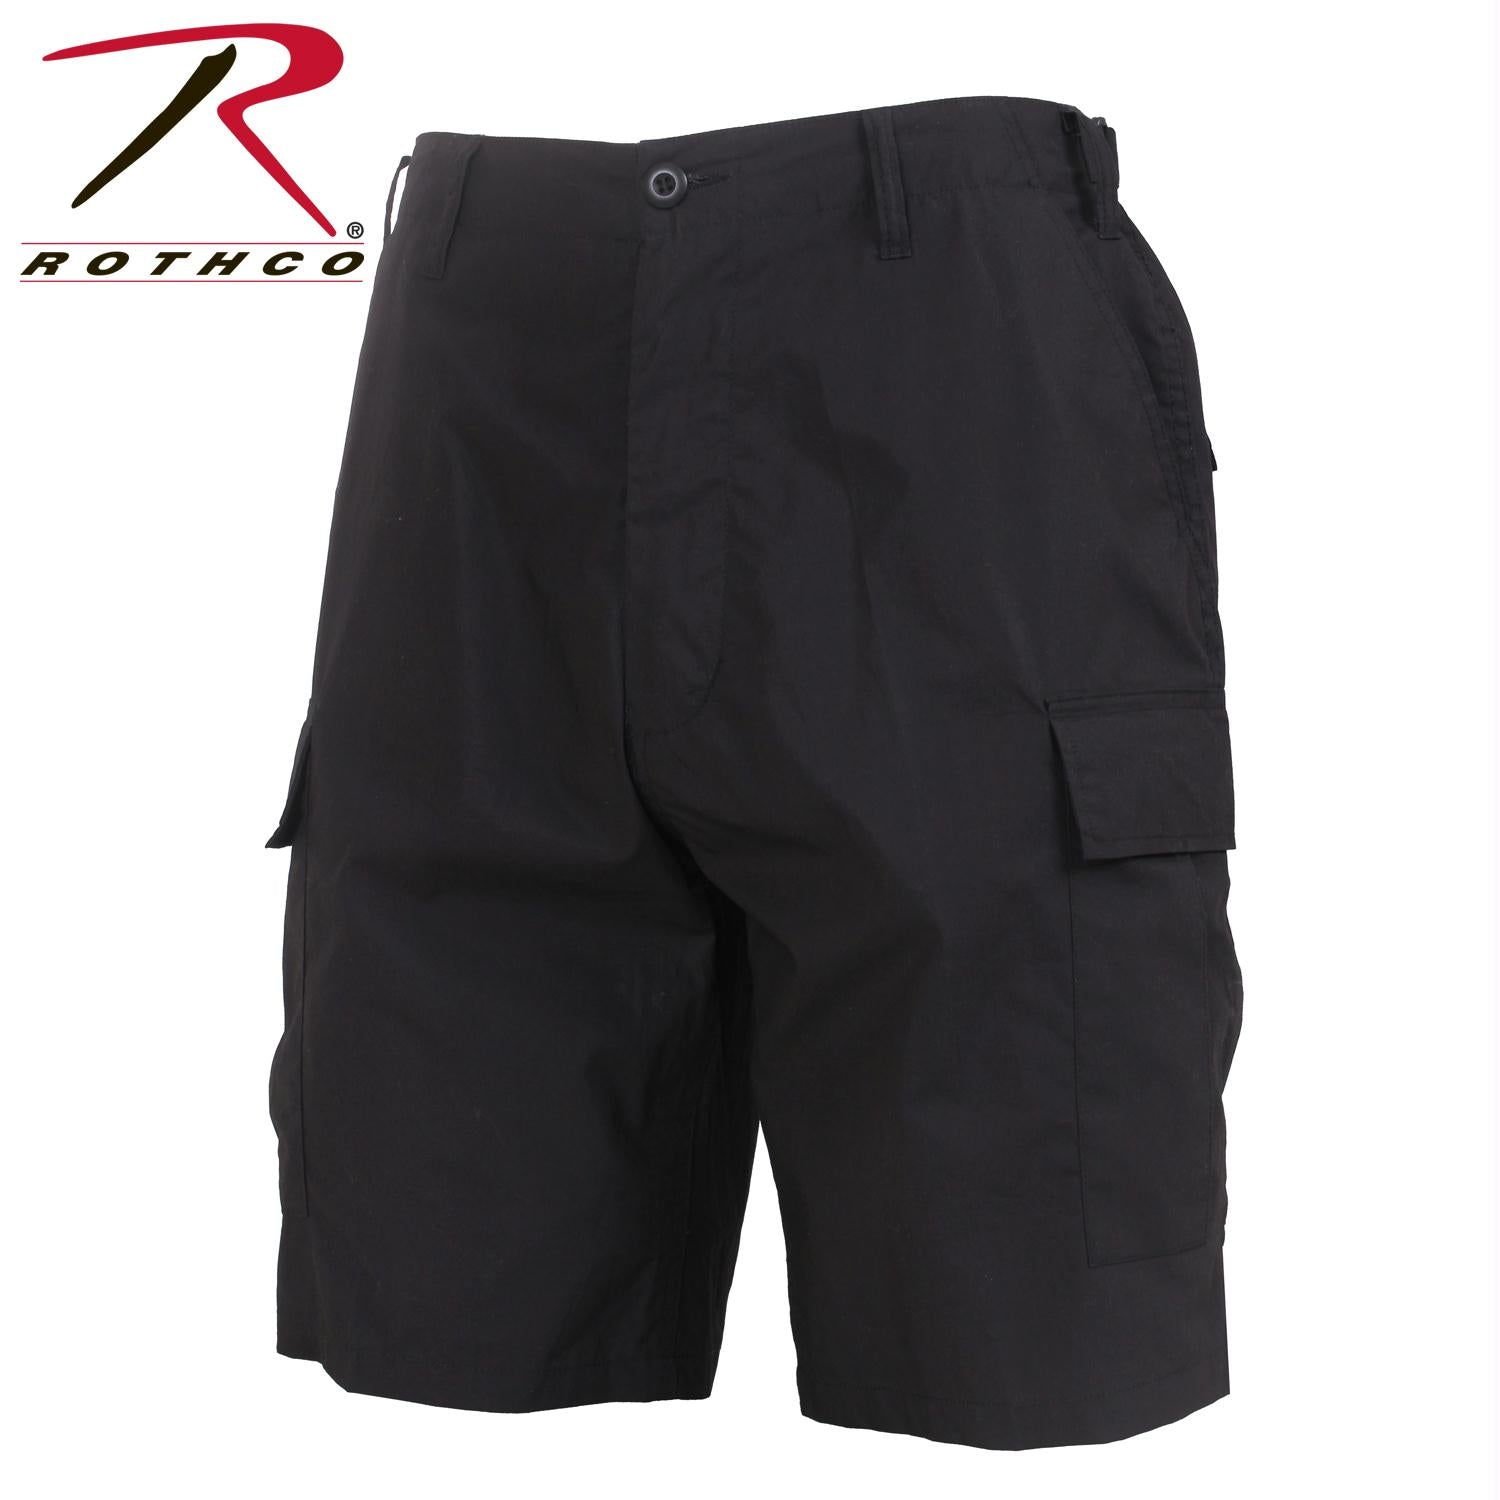 Rothco Lightweight Tactical BDU Shorts - Black / S